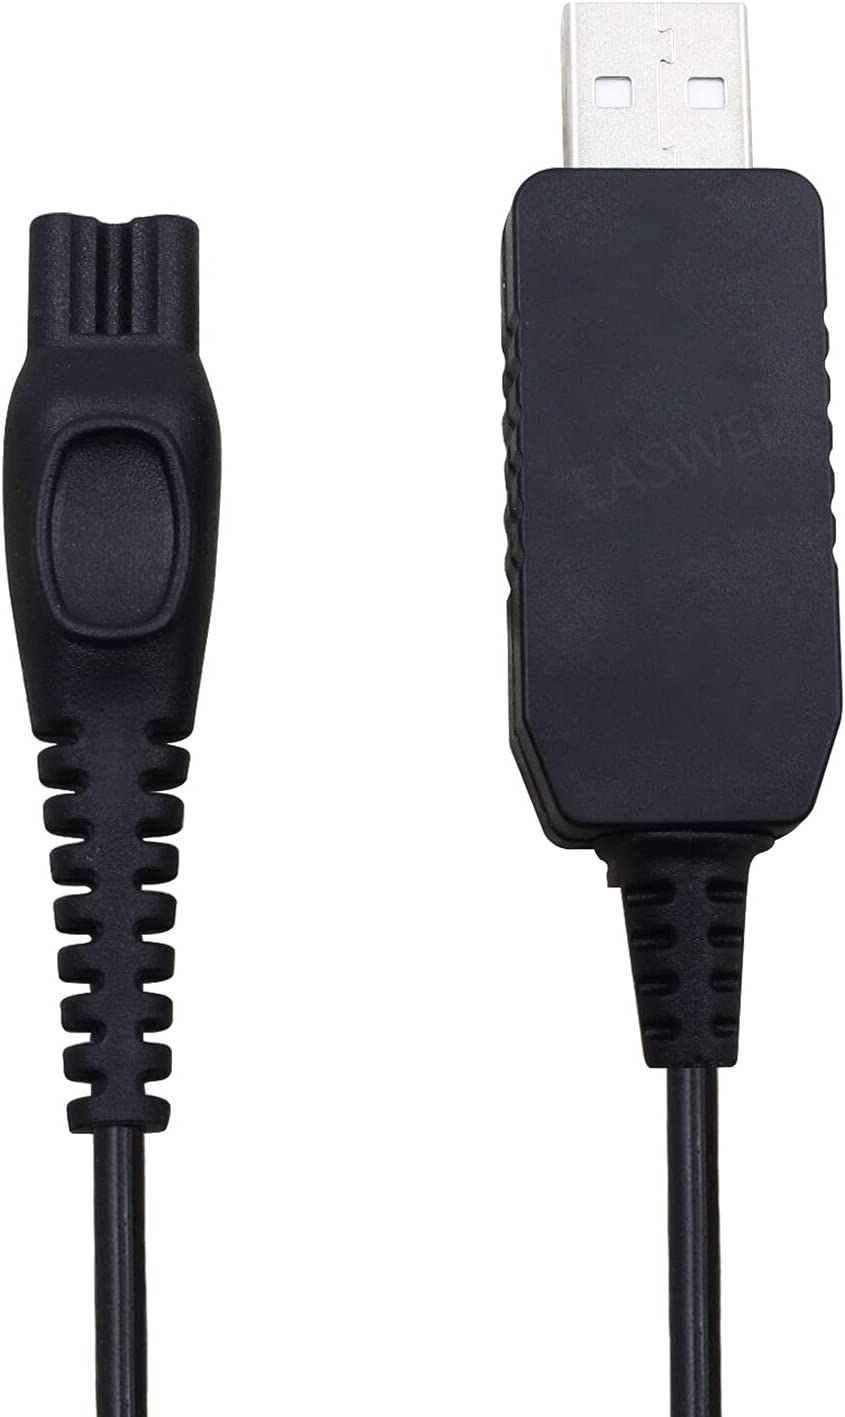 Car Power Adapter Super Special SALE held USB Charger for Replacement HQ712 Today's only Cord Philips